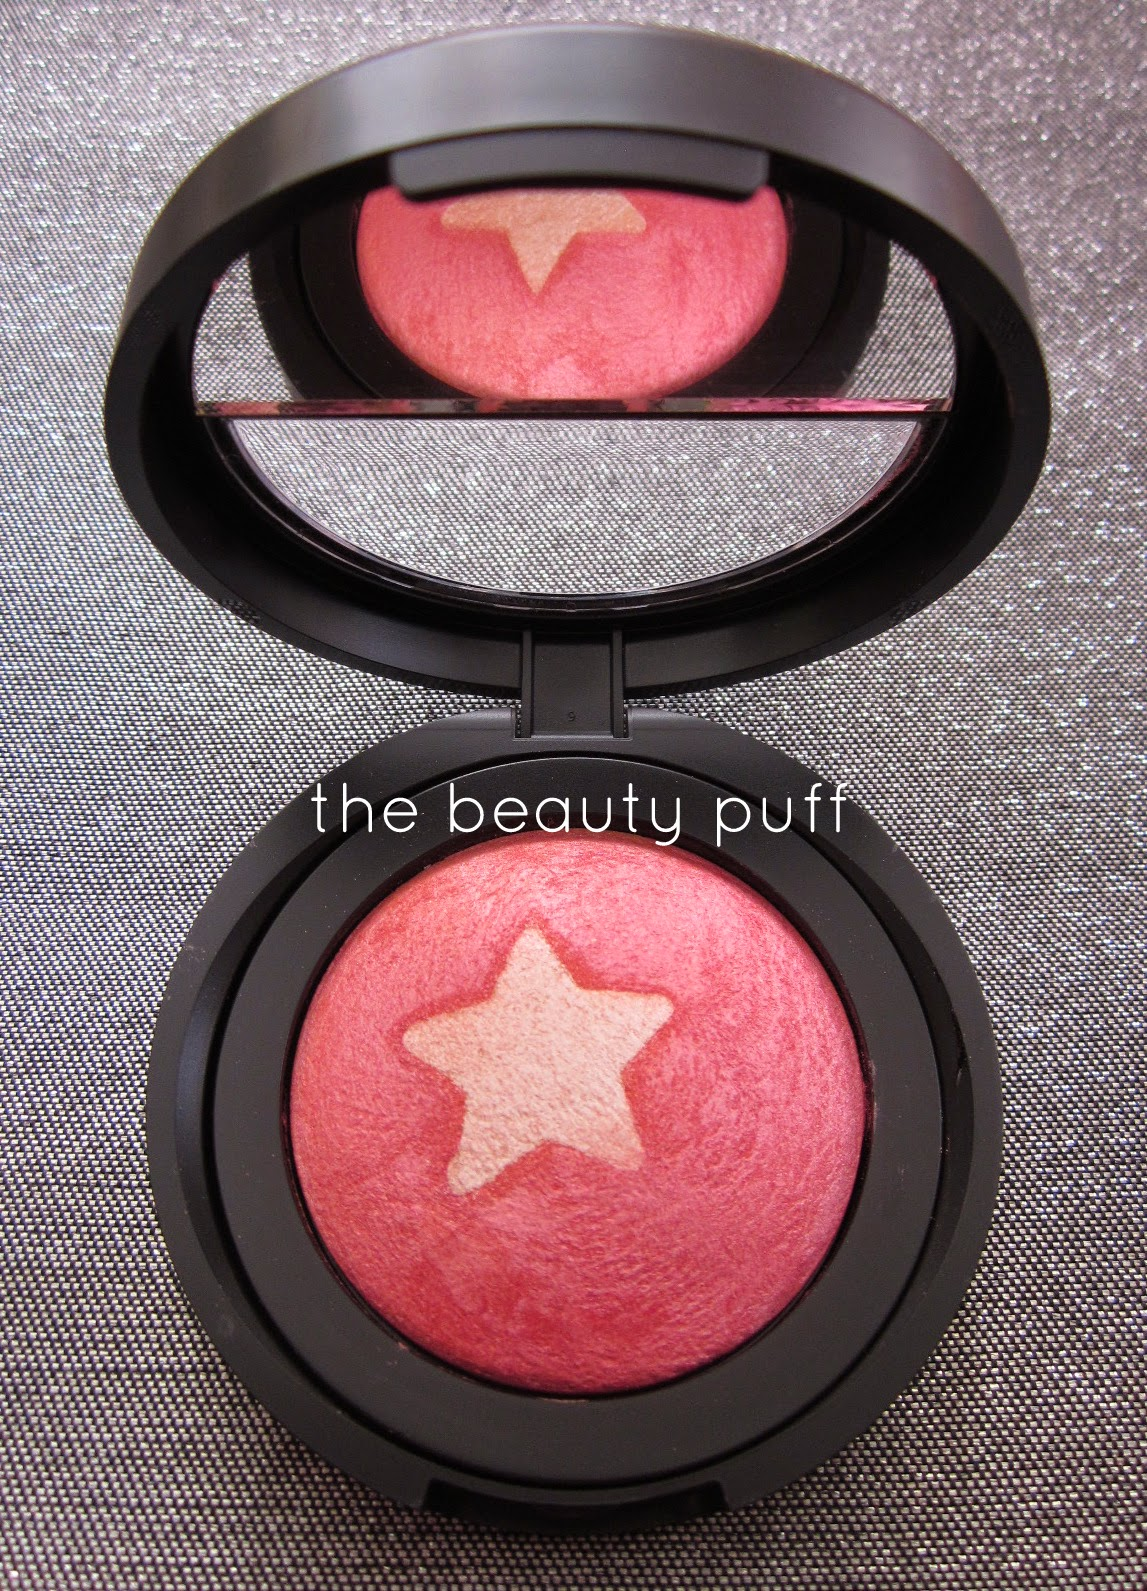 laura geller blush n highlight rose starlight - the beauty puff